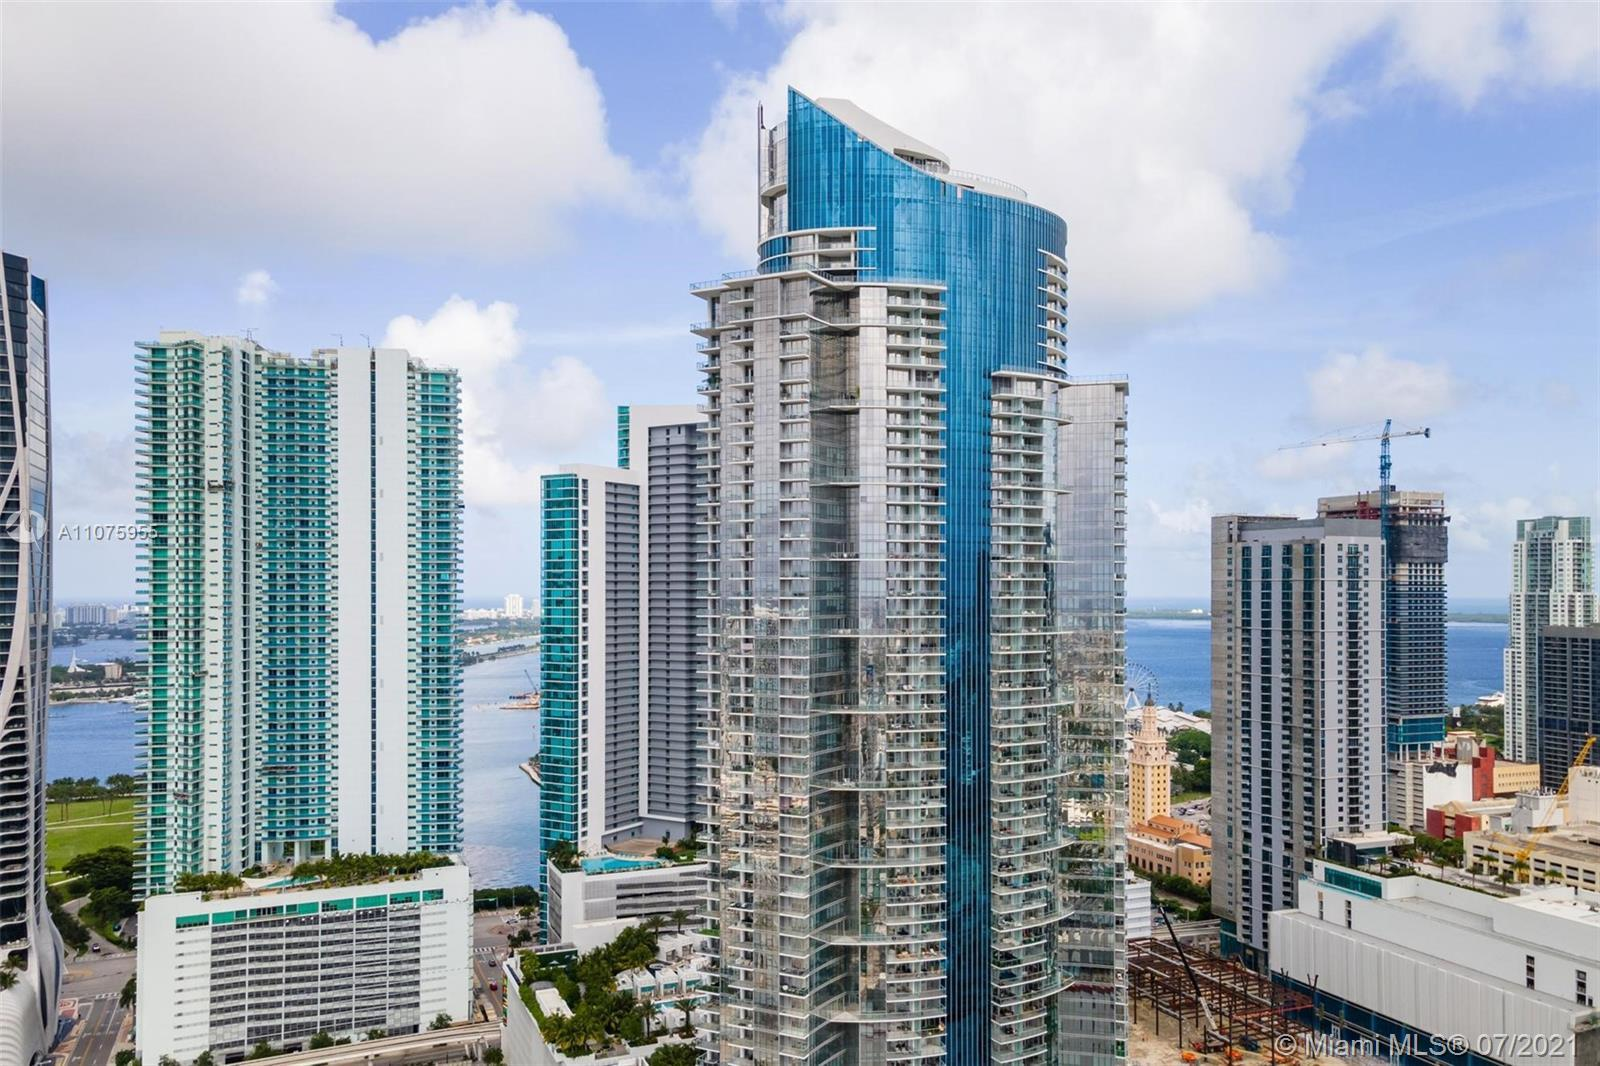 BEST DEAL IN PARAMOUNT RIGHT NOW!!! Call me directly to tour this exquisite 30th floor unit with all